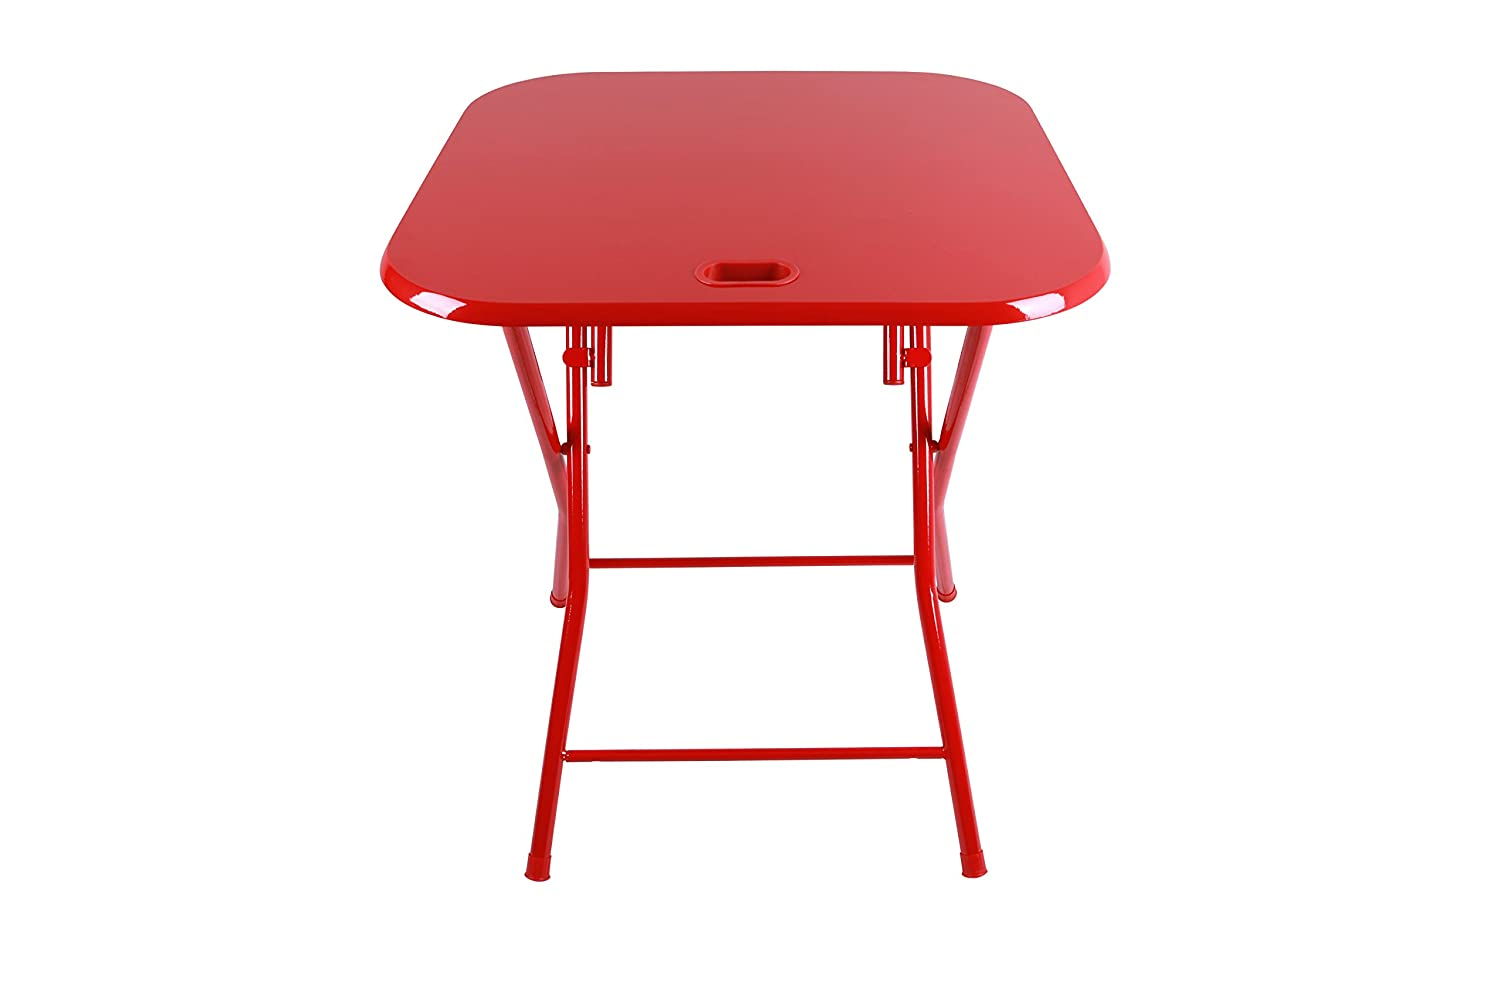 Amazon.com: Dar Living Folding Table With Handle, Red: Kitchen U0026 Dining